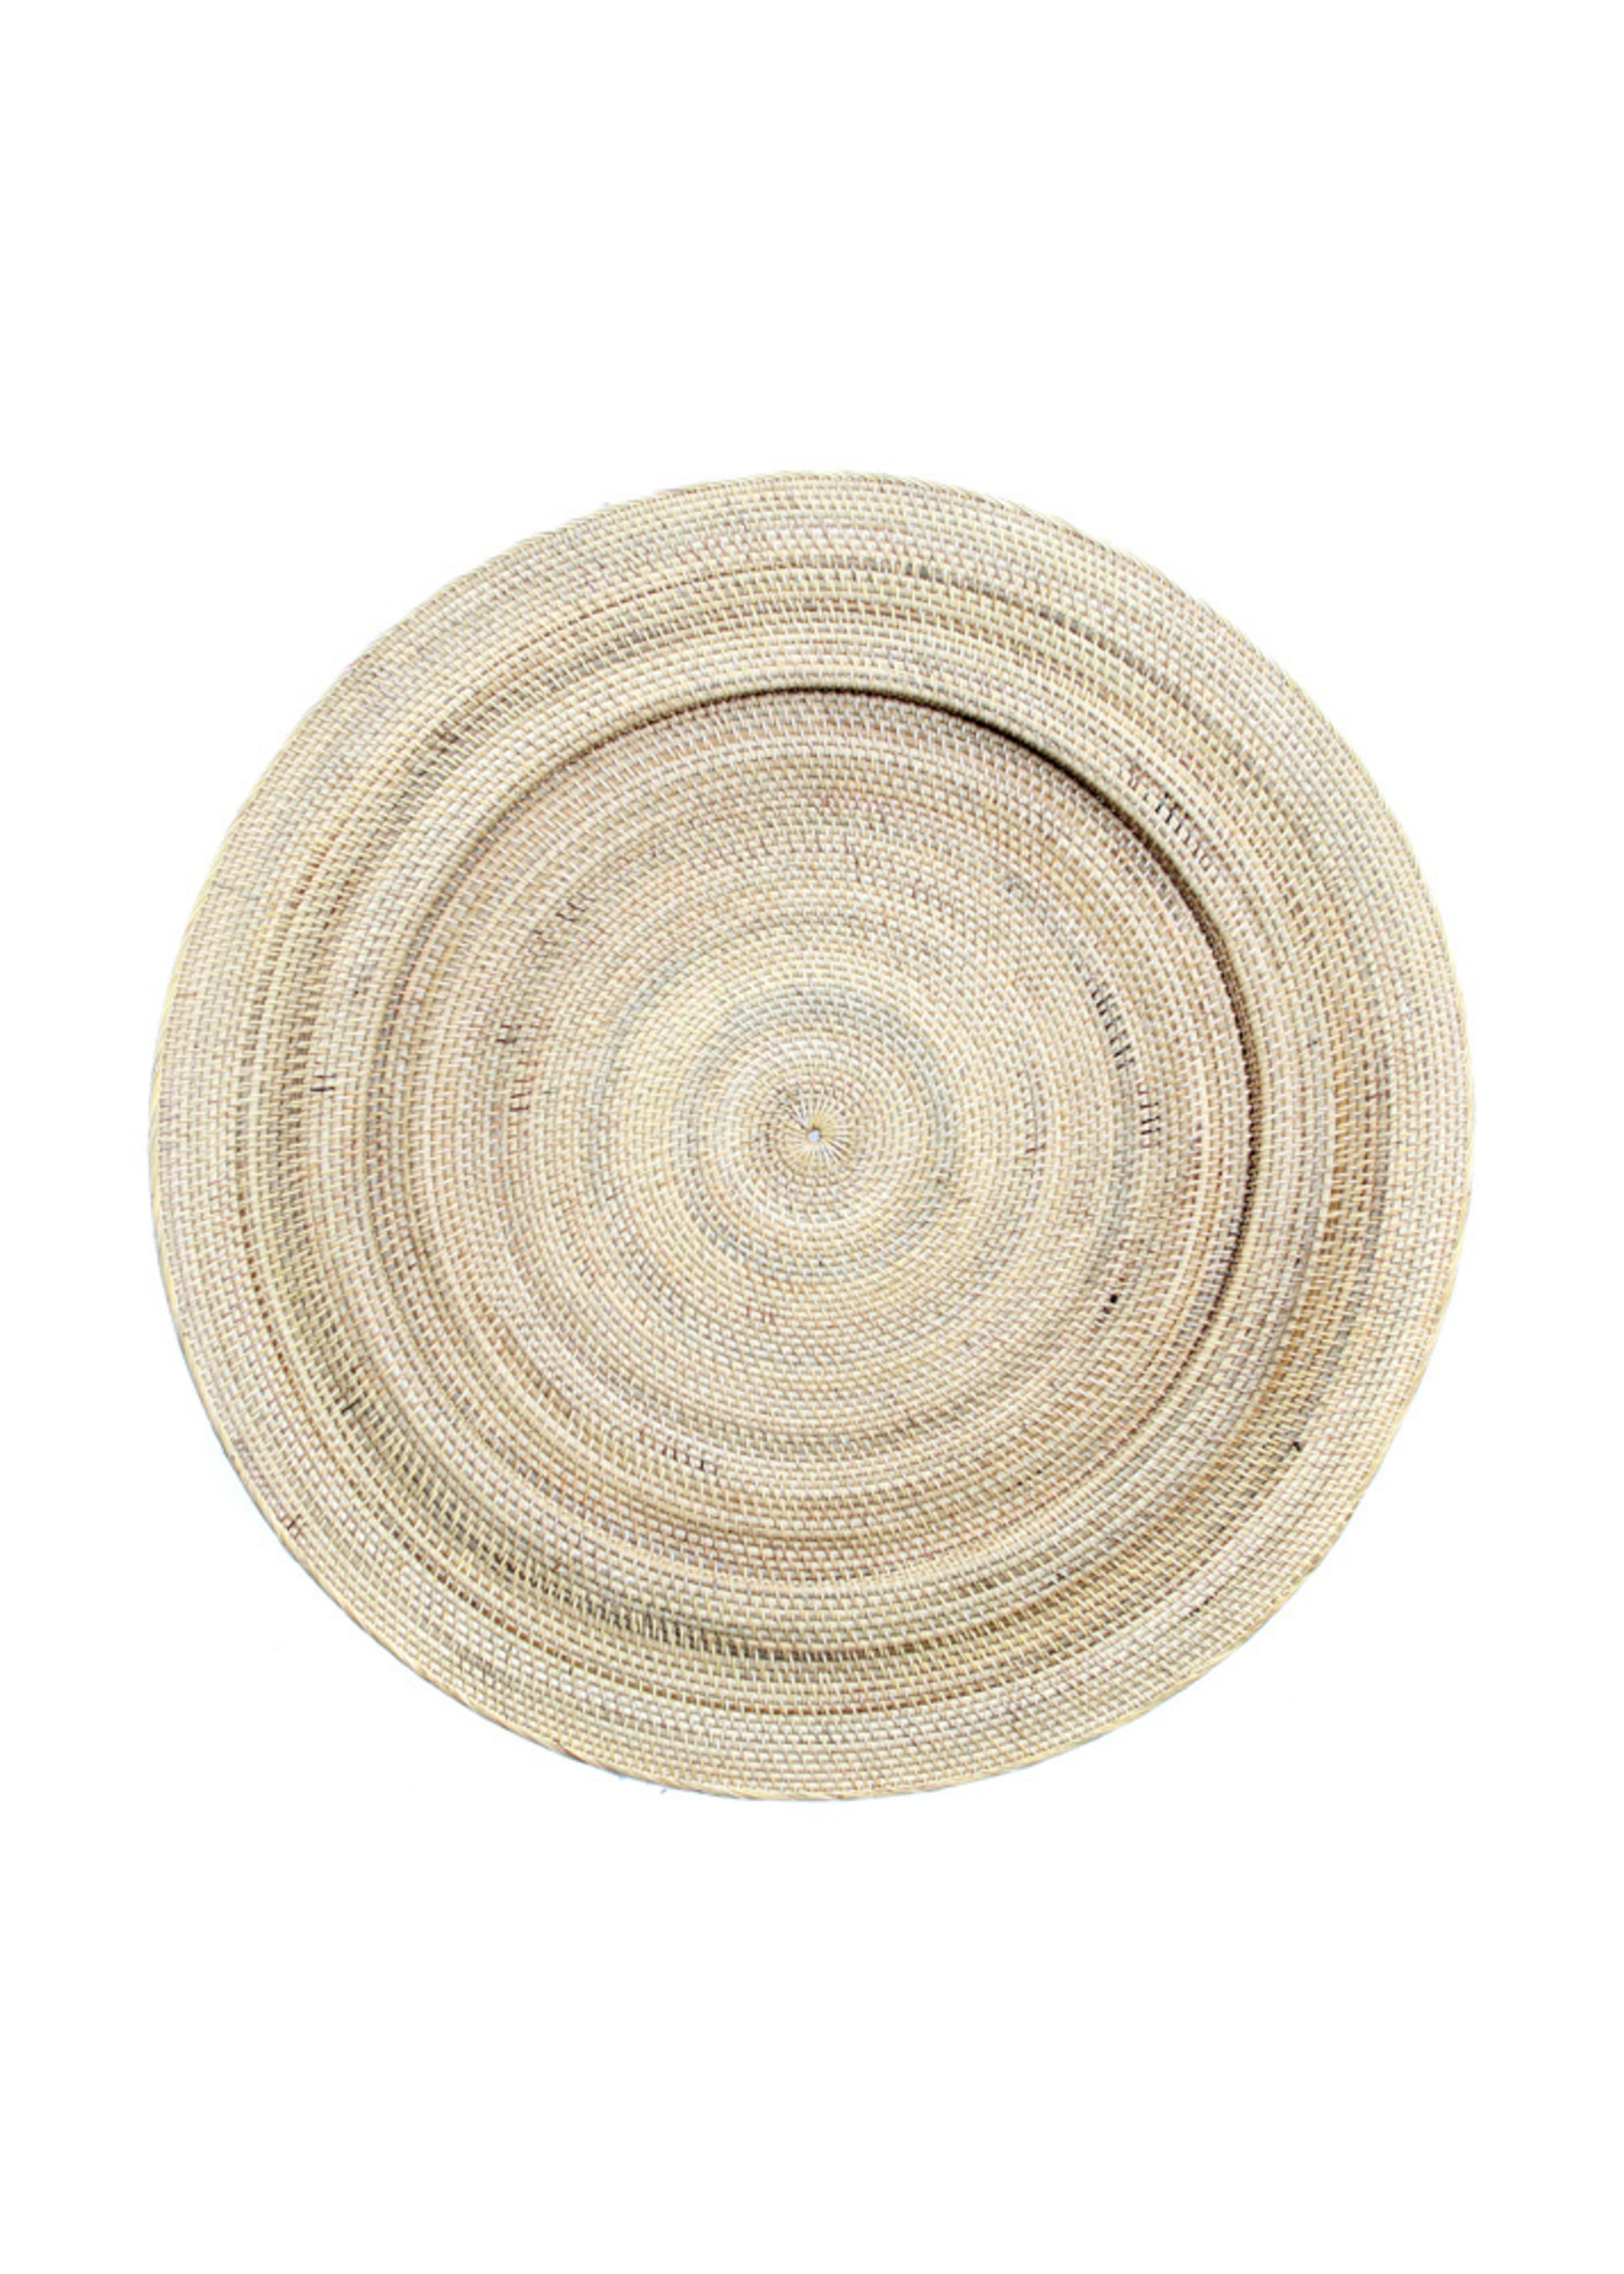 The Jasmine Plate - Natural - M